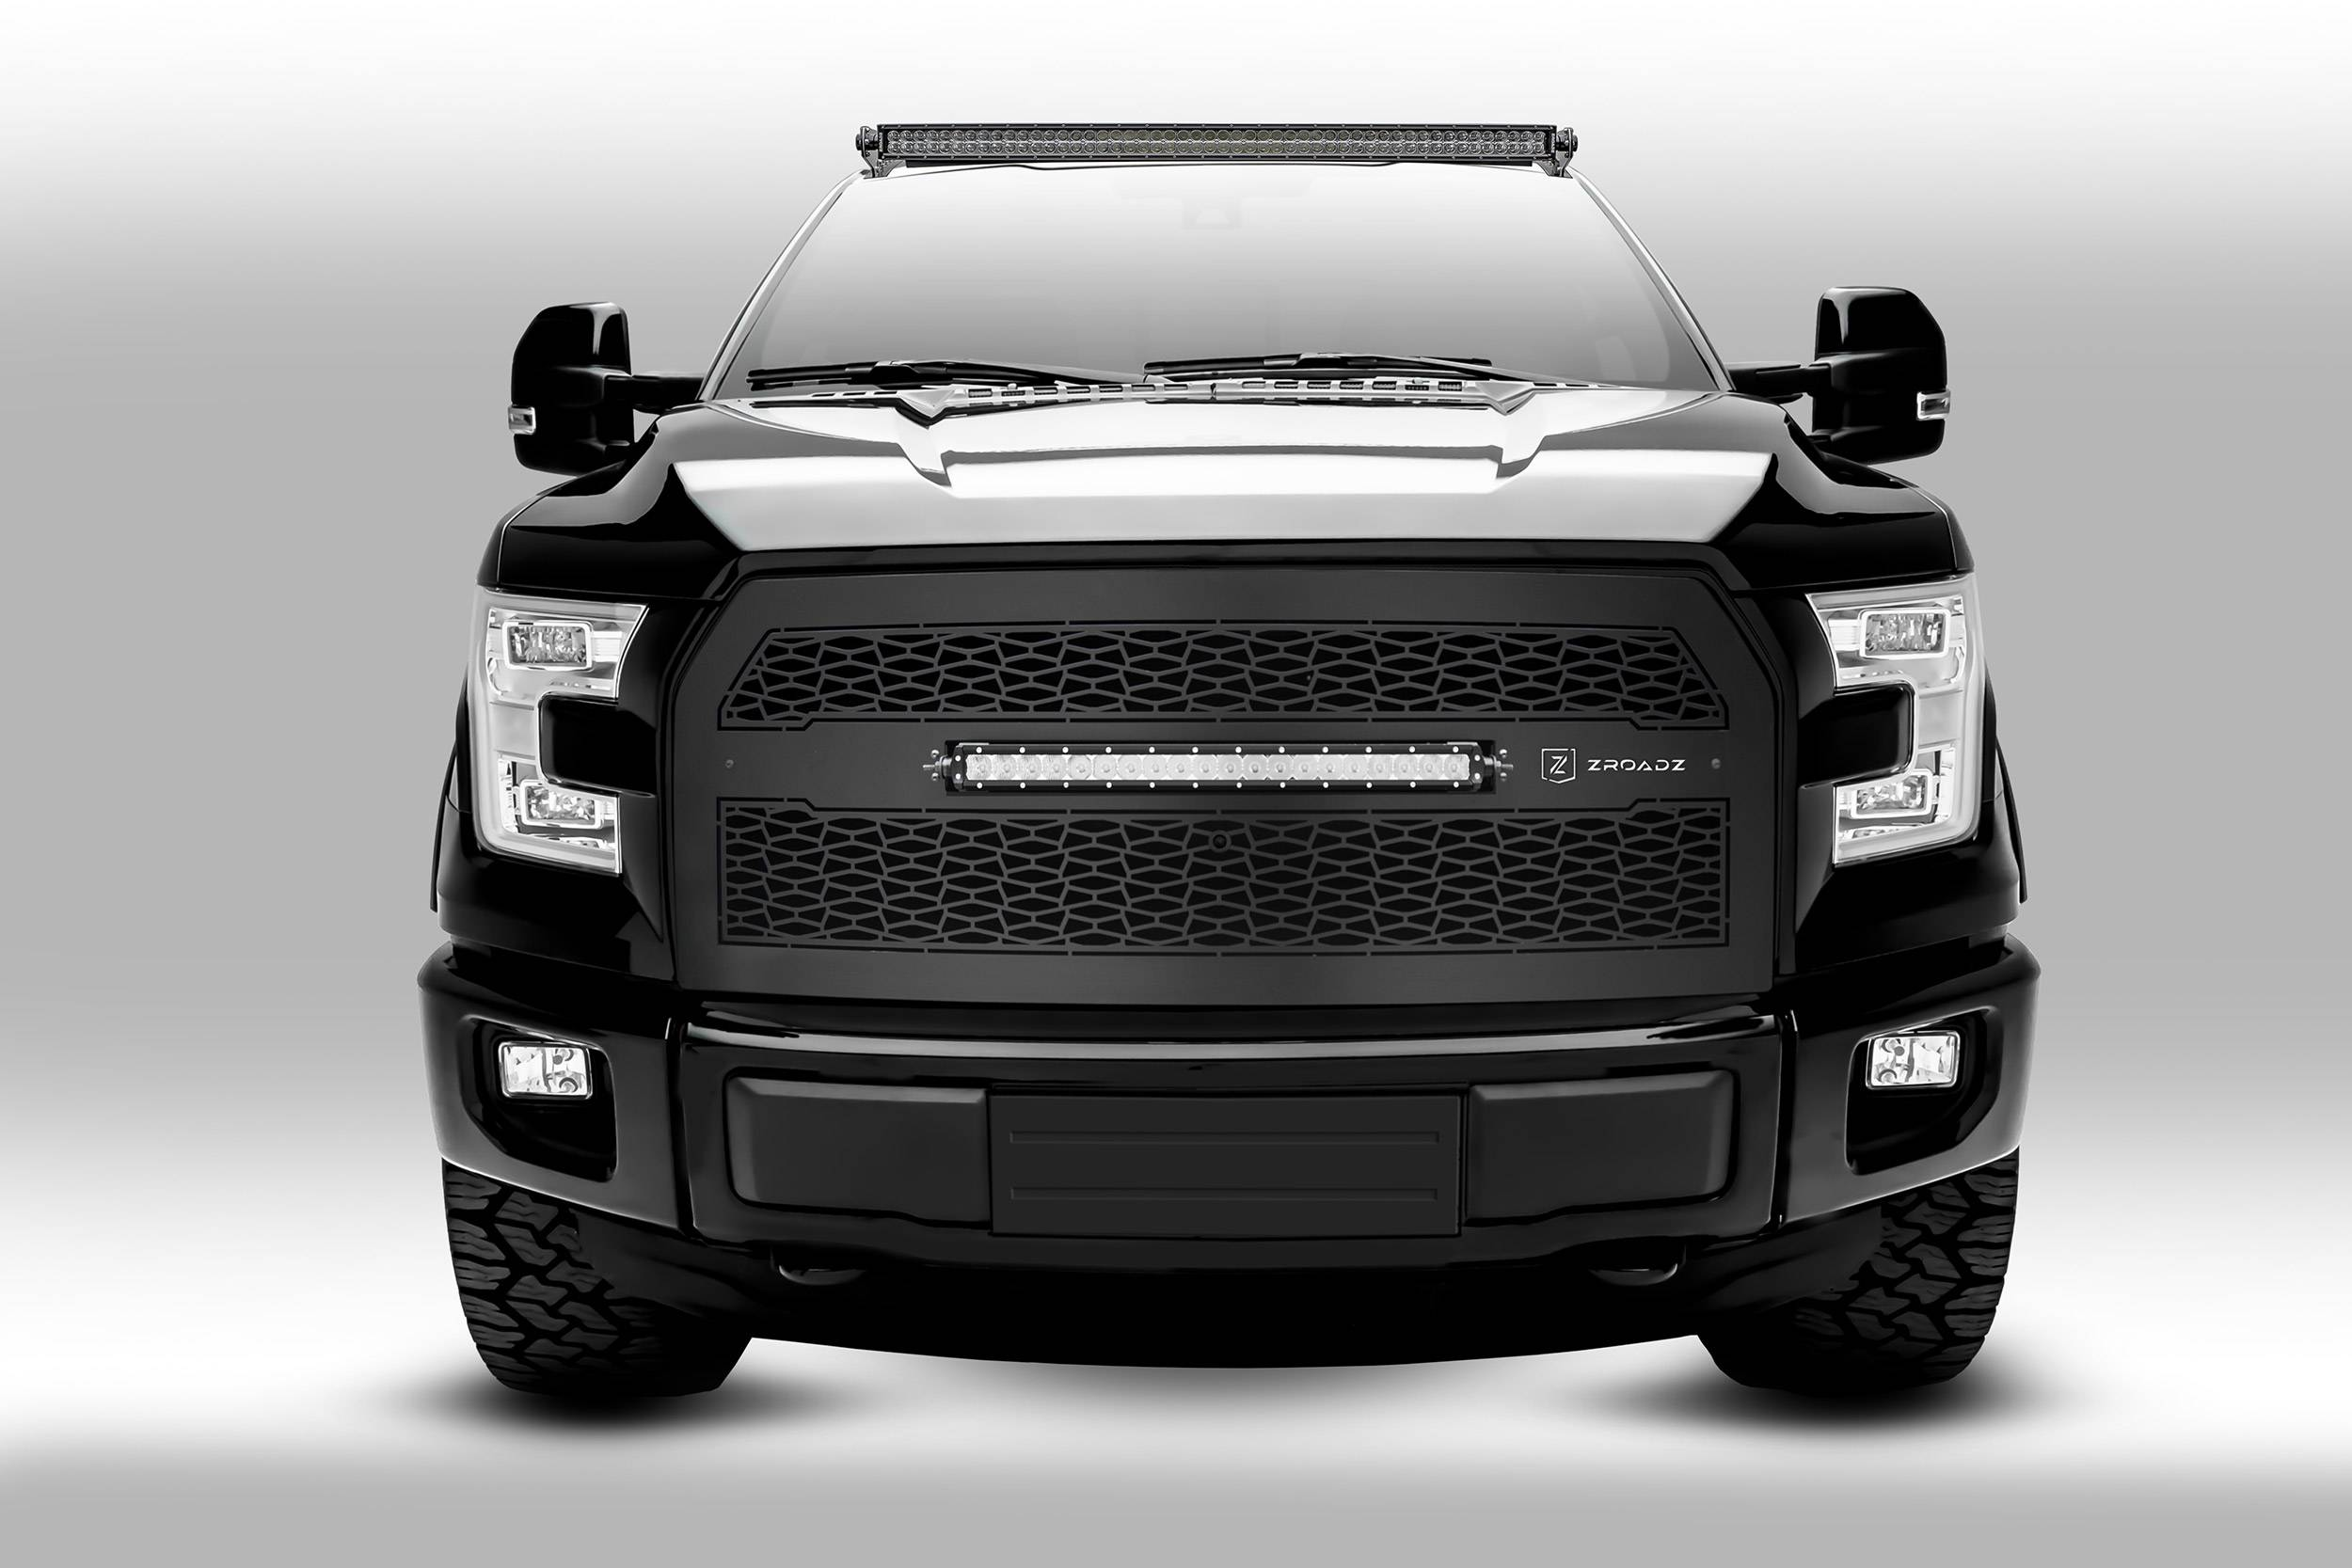 2015 Ford F150 Grill >> 2015 2019 Ford F 150 Front Roof Led Bracket To Mount 1 50 Inch Curved Led Light Bar Pn Z335731